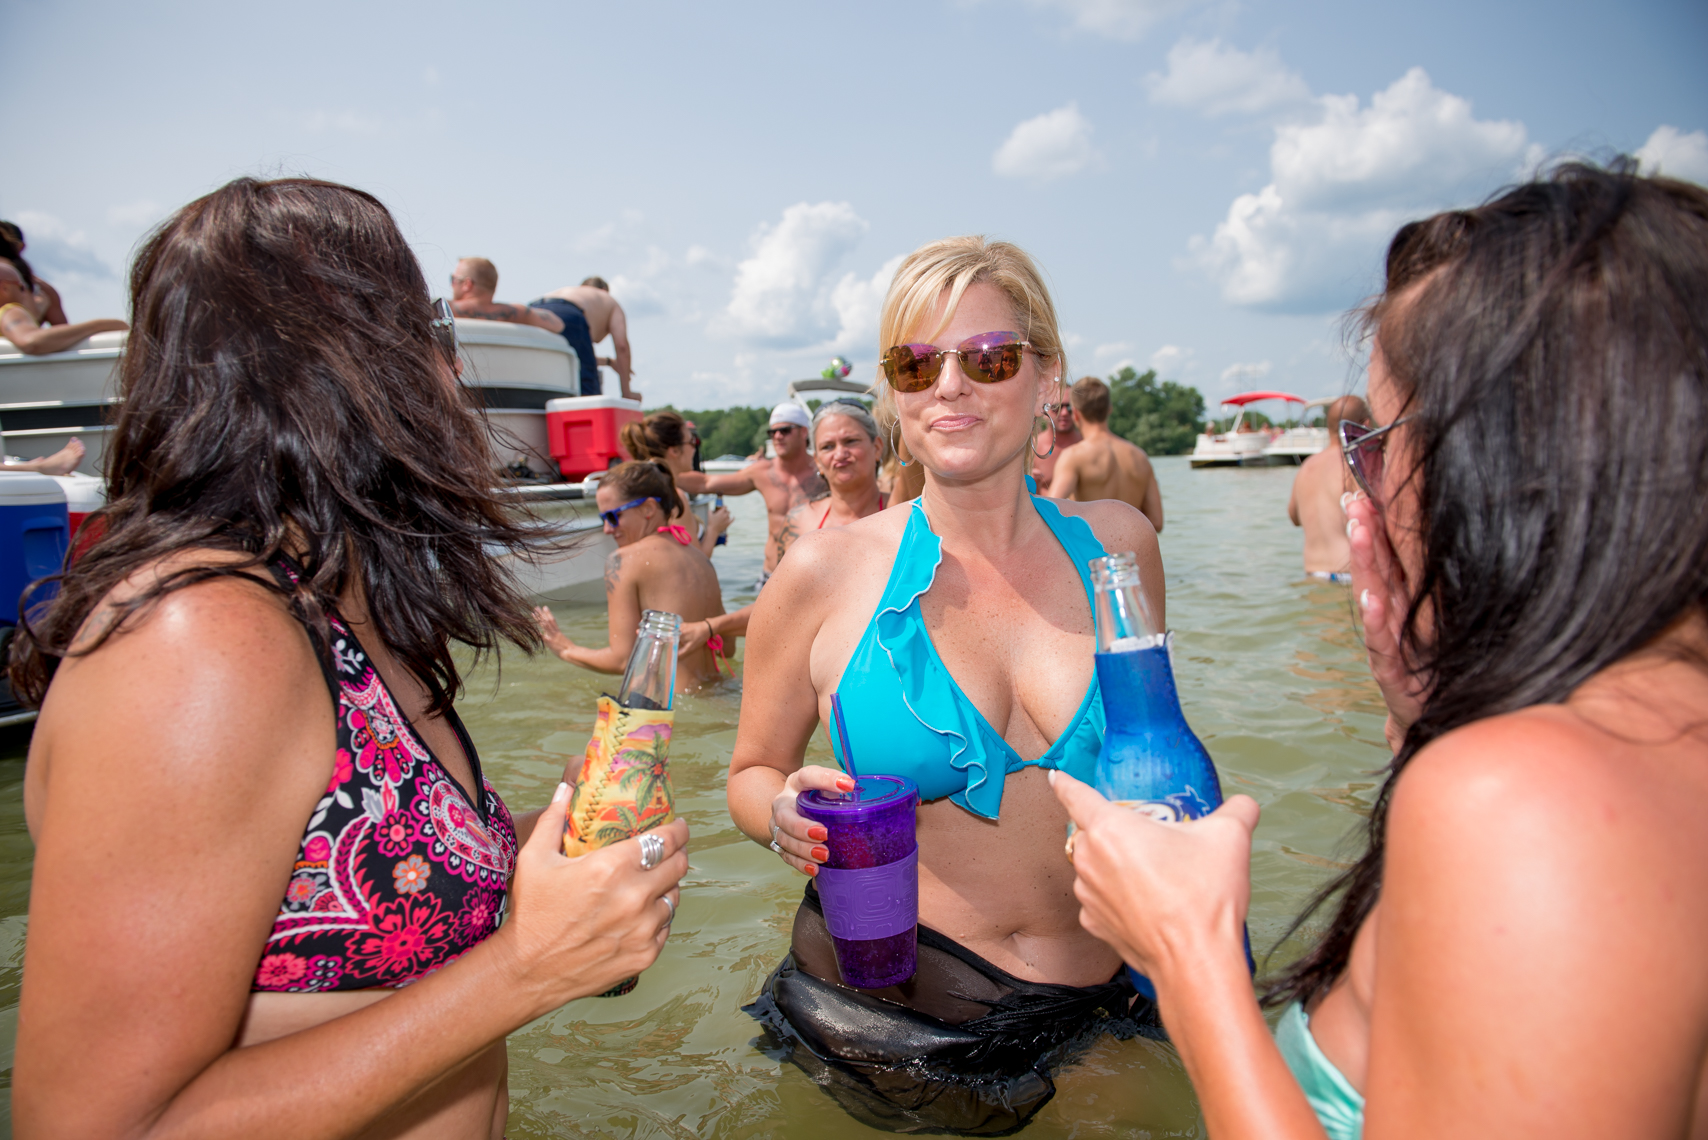 Young women, summer lake party, real people, laughing, lifestyle, smiling, real beauty, happy, plus size, swimming, swim, suit, bathing, confident, summer fun, lake party real people, liquor, travel, Madison, Chicago, Nashville advertising, beverage, life